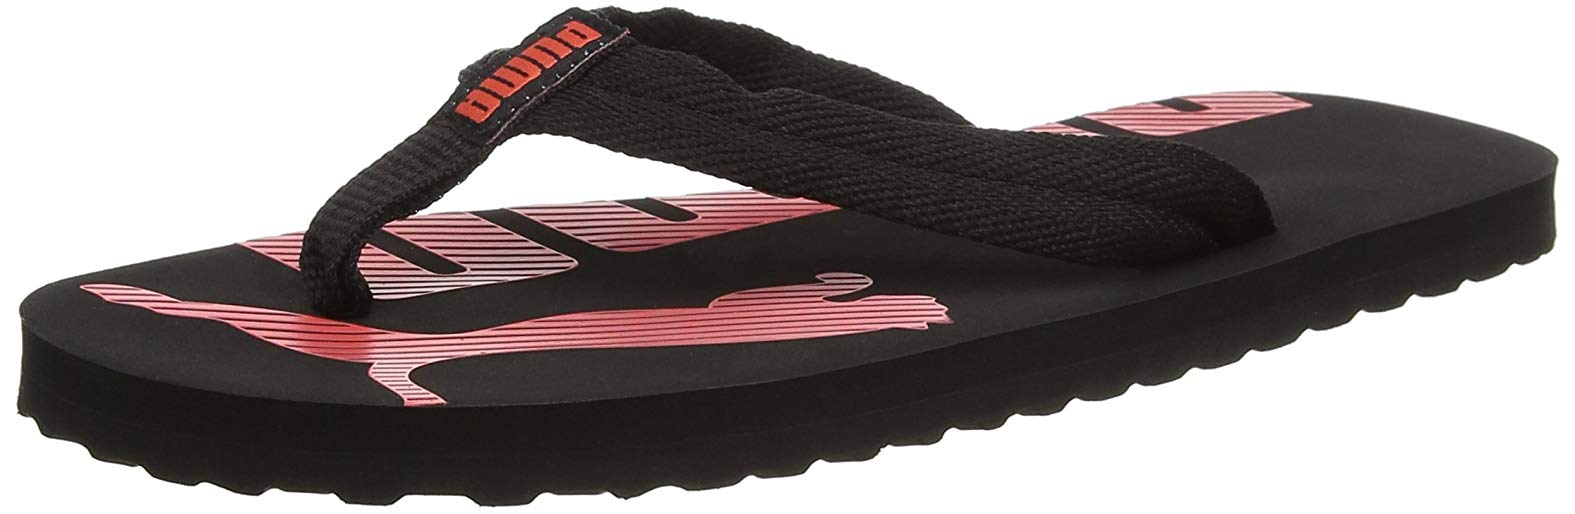 dc88229422e5 Home   Puma Epic Flip V2 Unisex Flops Slippers Black   Coral. Tap to expand